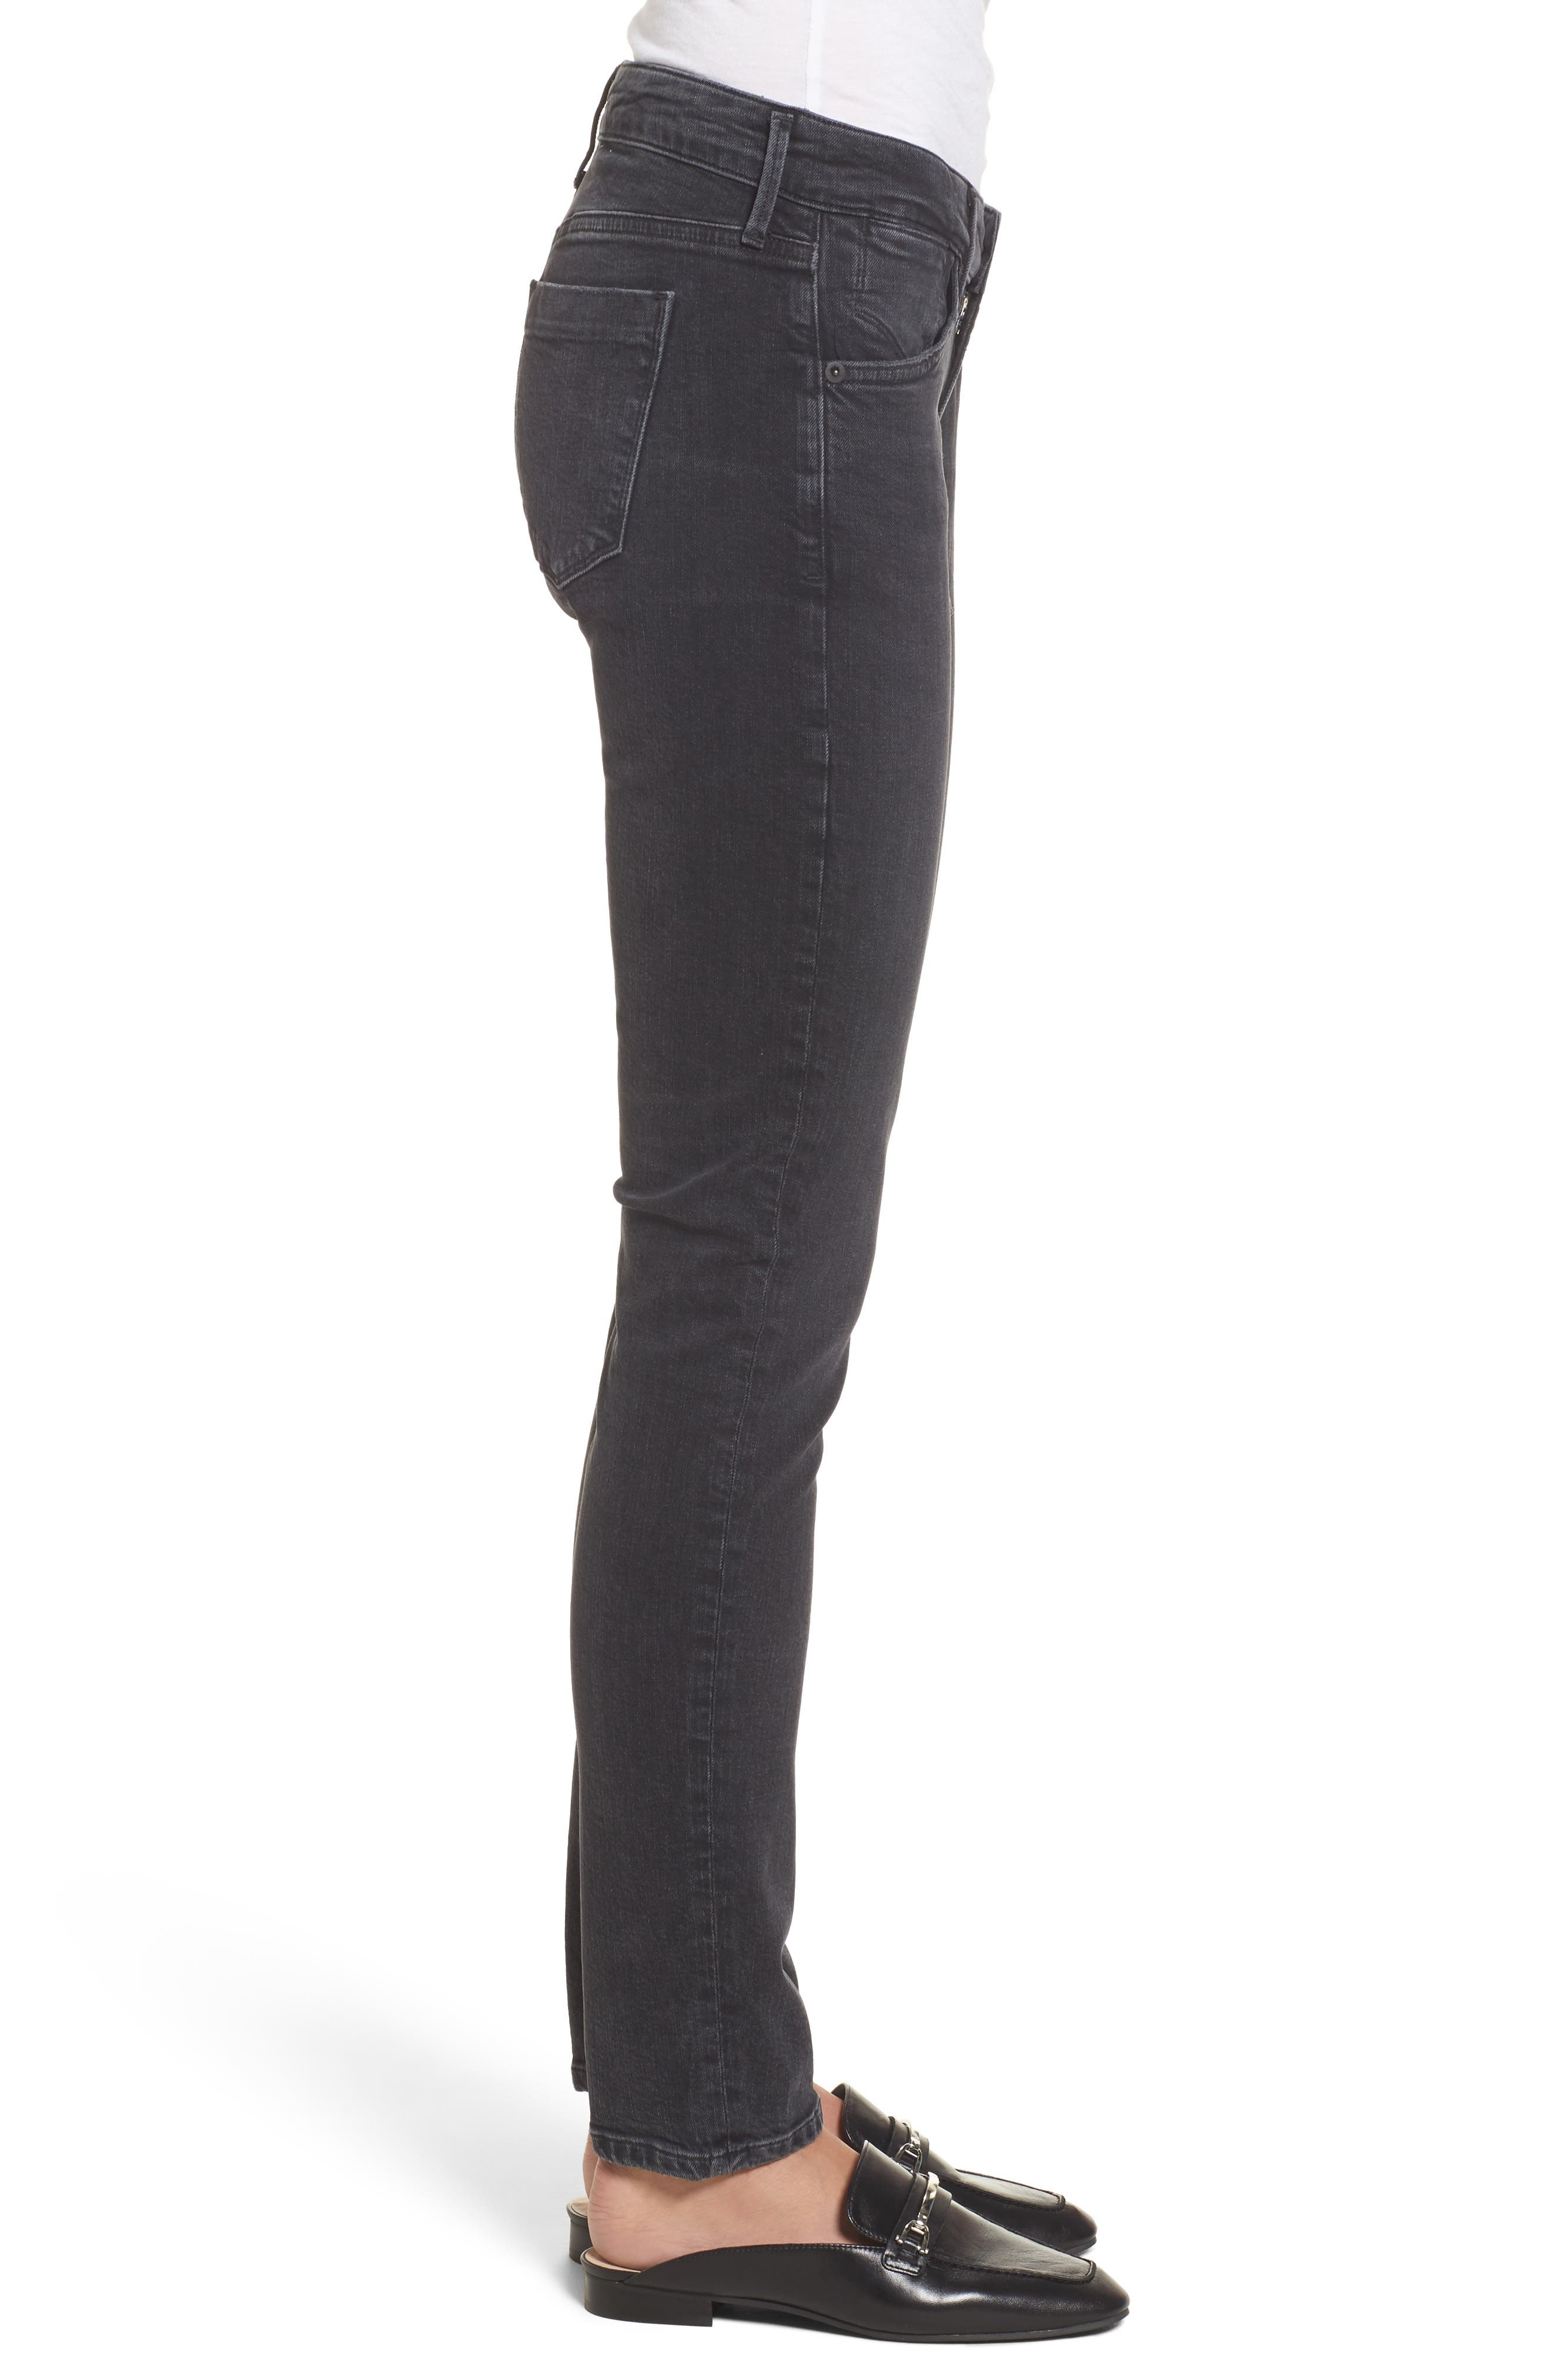 Chloe Low Rise Slim Jeans,                             Alternate thumbnail 3, color,                             Chelsea